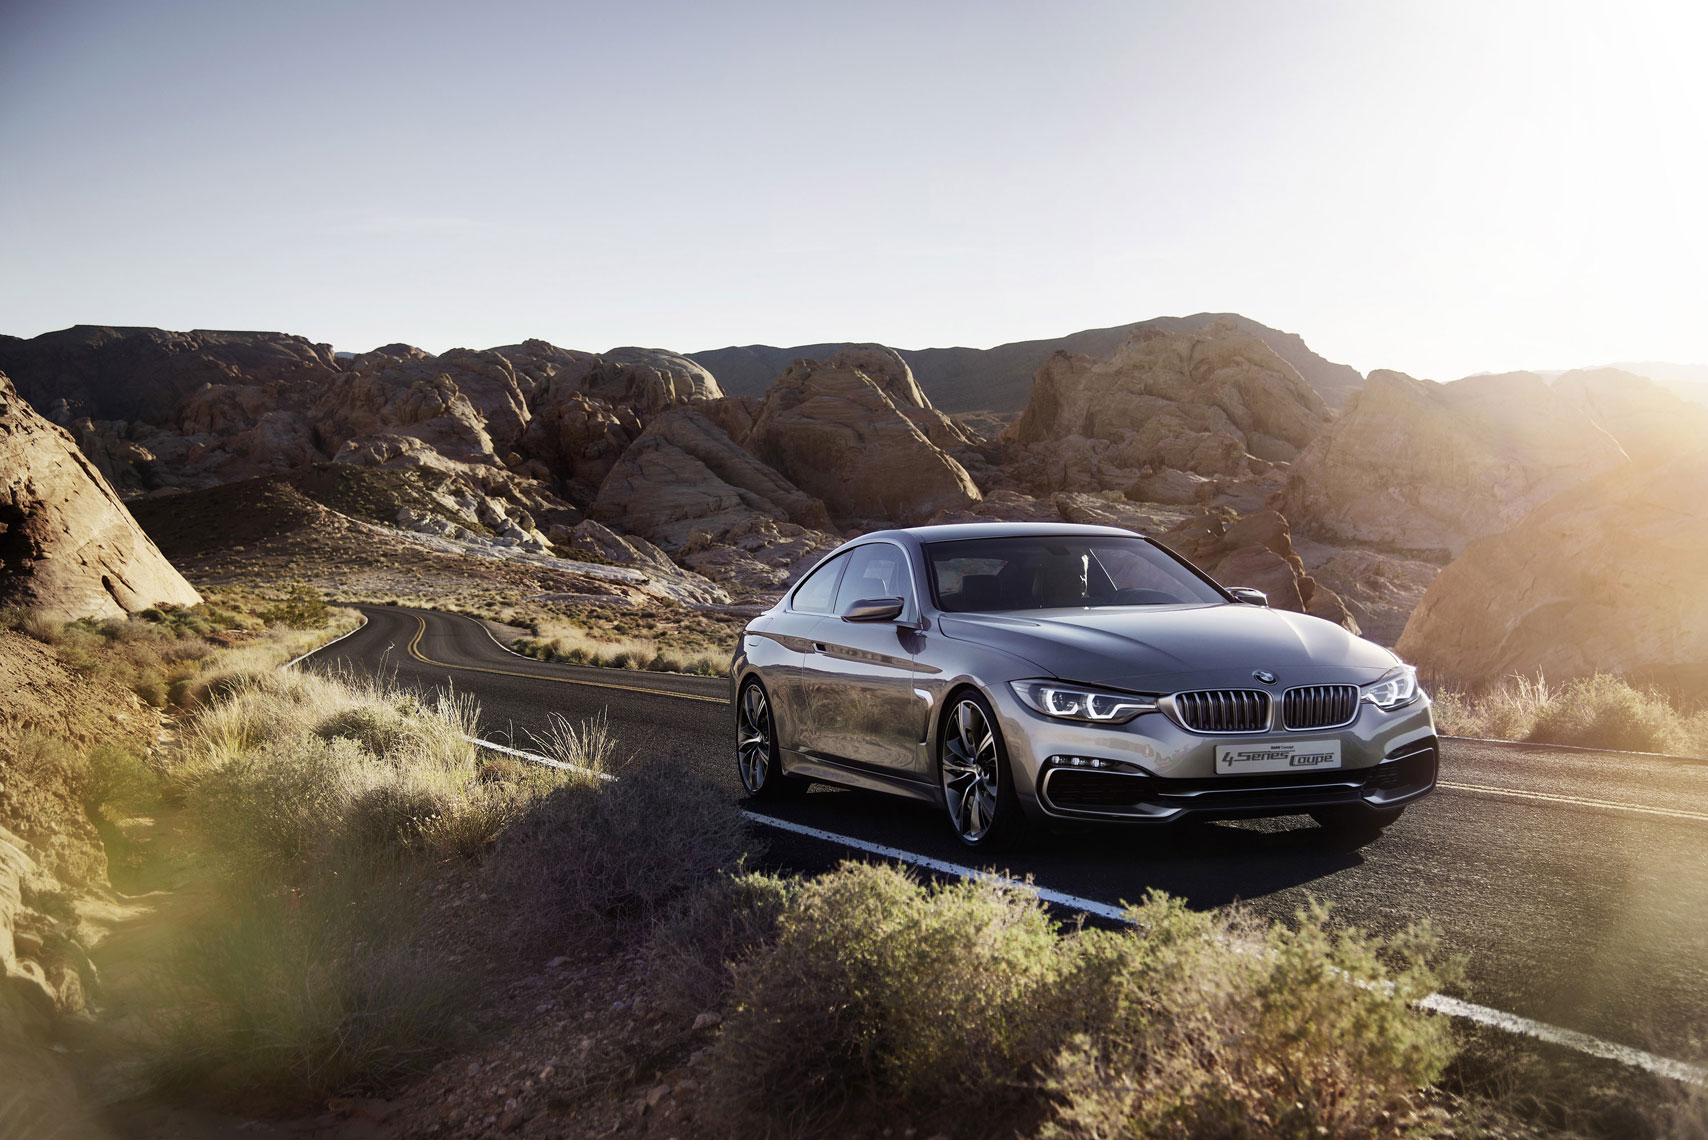 bmw-4-series-coupe-concept-f32-04.jpg